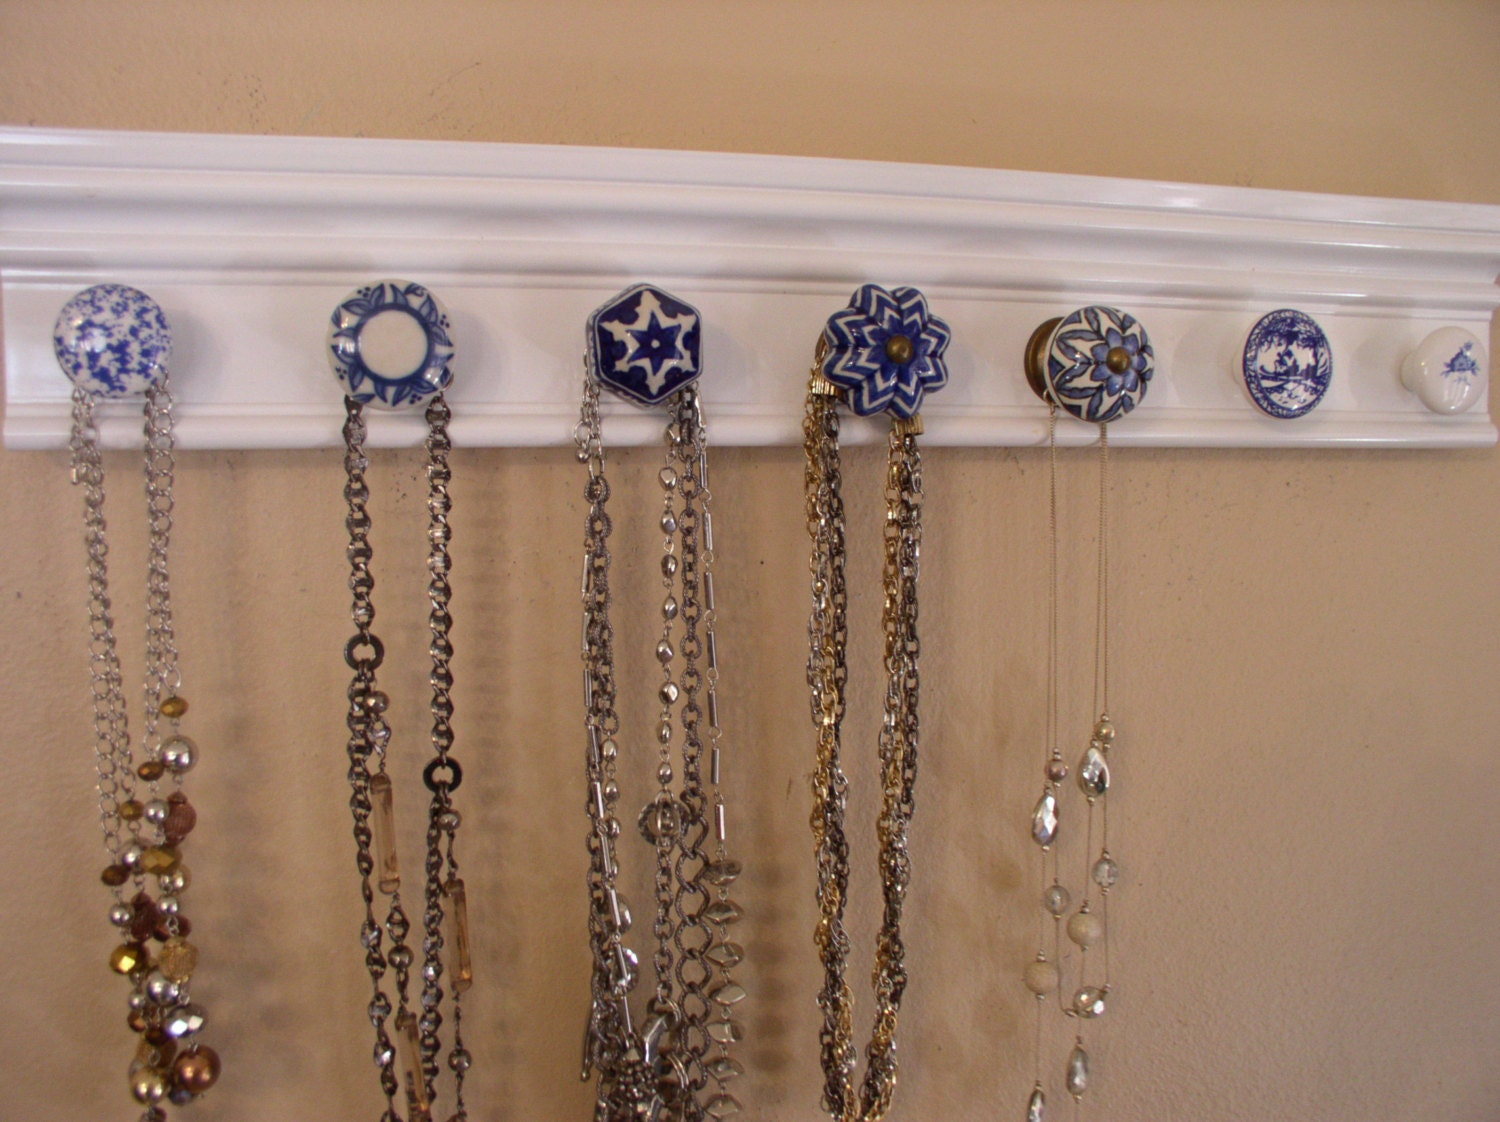 Necklace organizer. This jewelry hanger has 7 blue and white